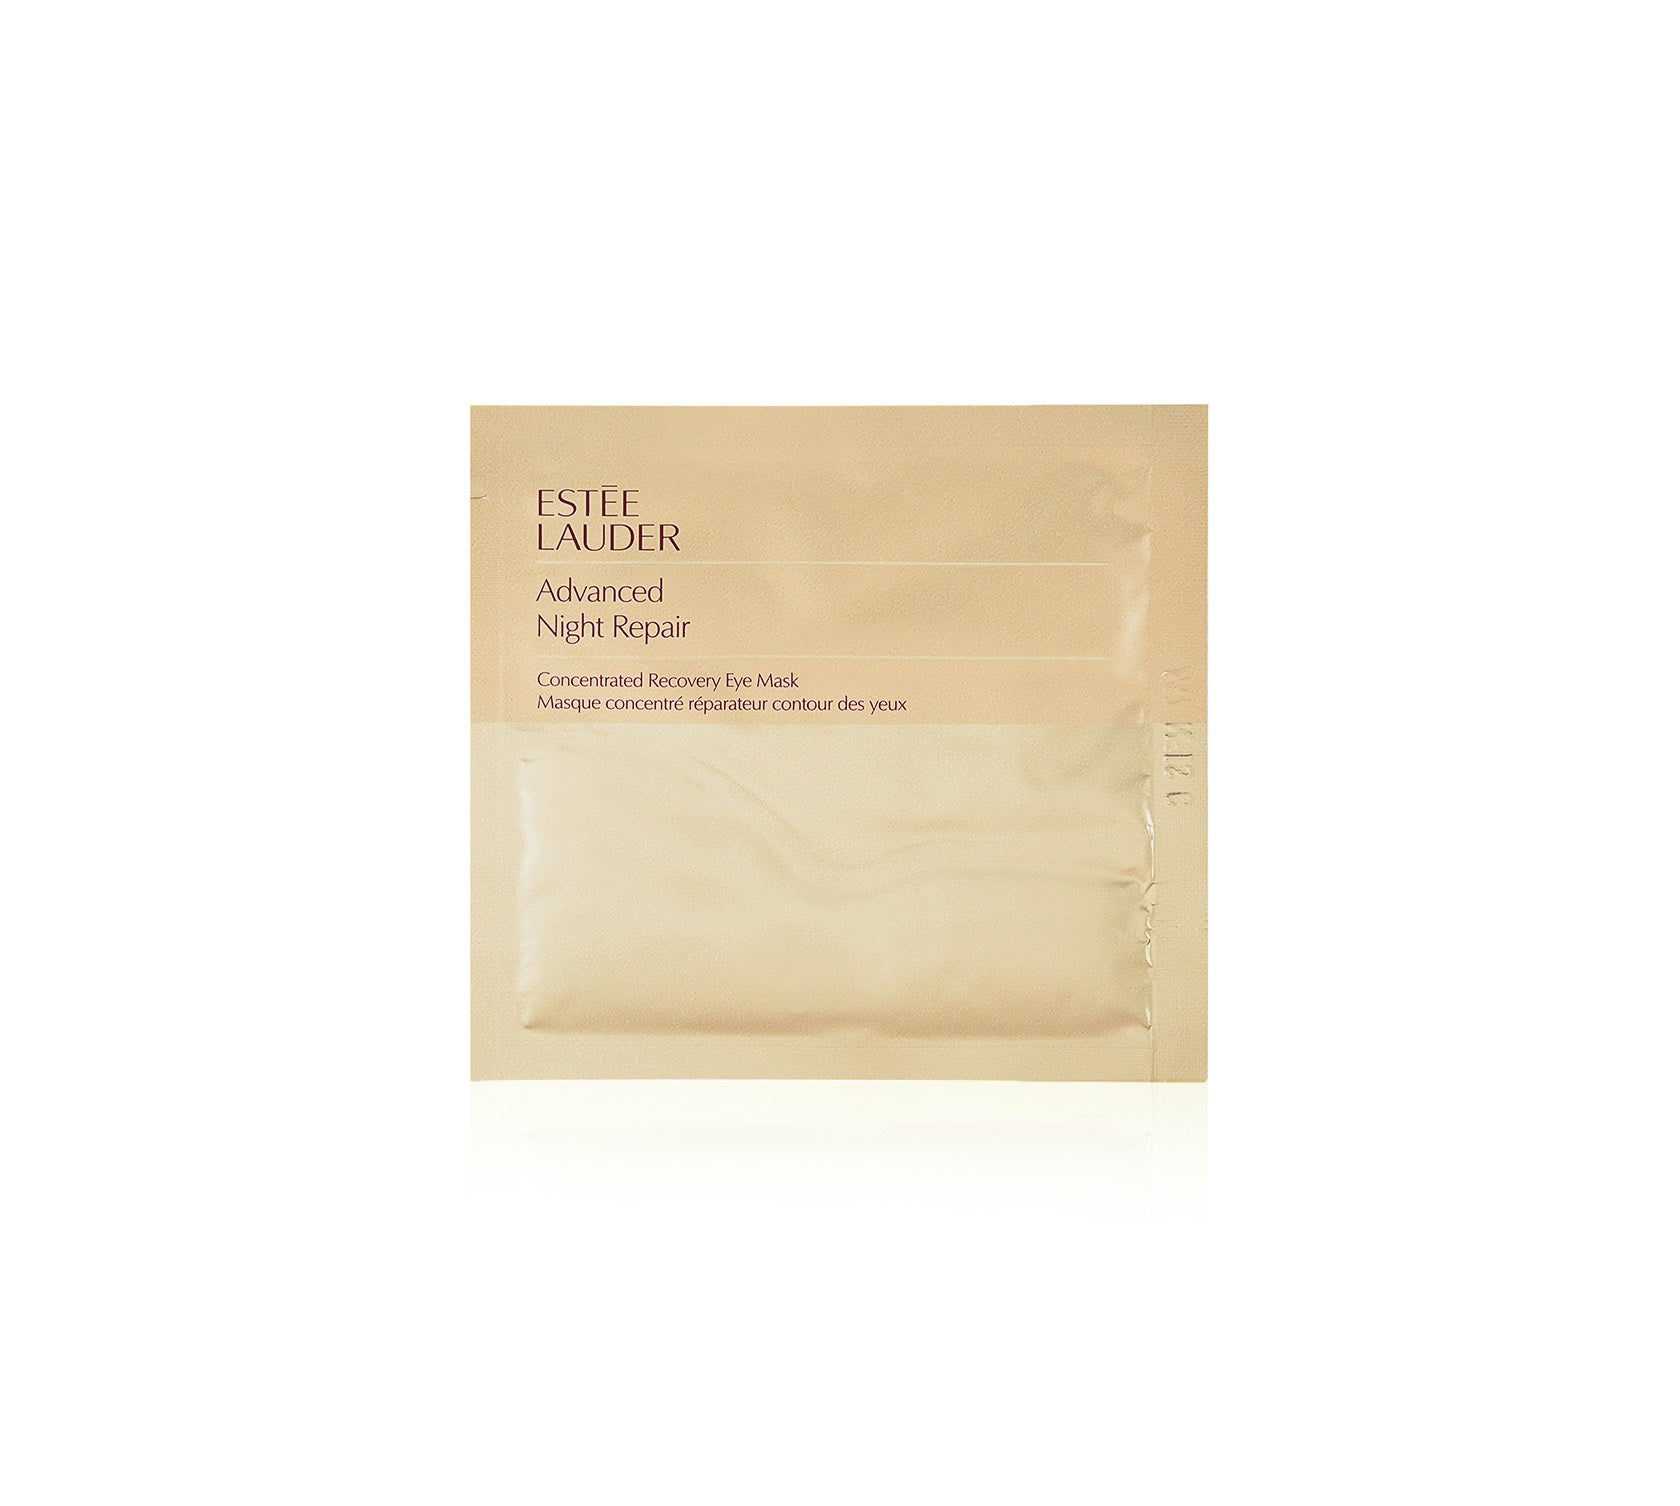 [Mini] Advanced Night Repair Concentrated Recovery Eye Mask